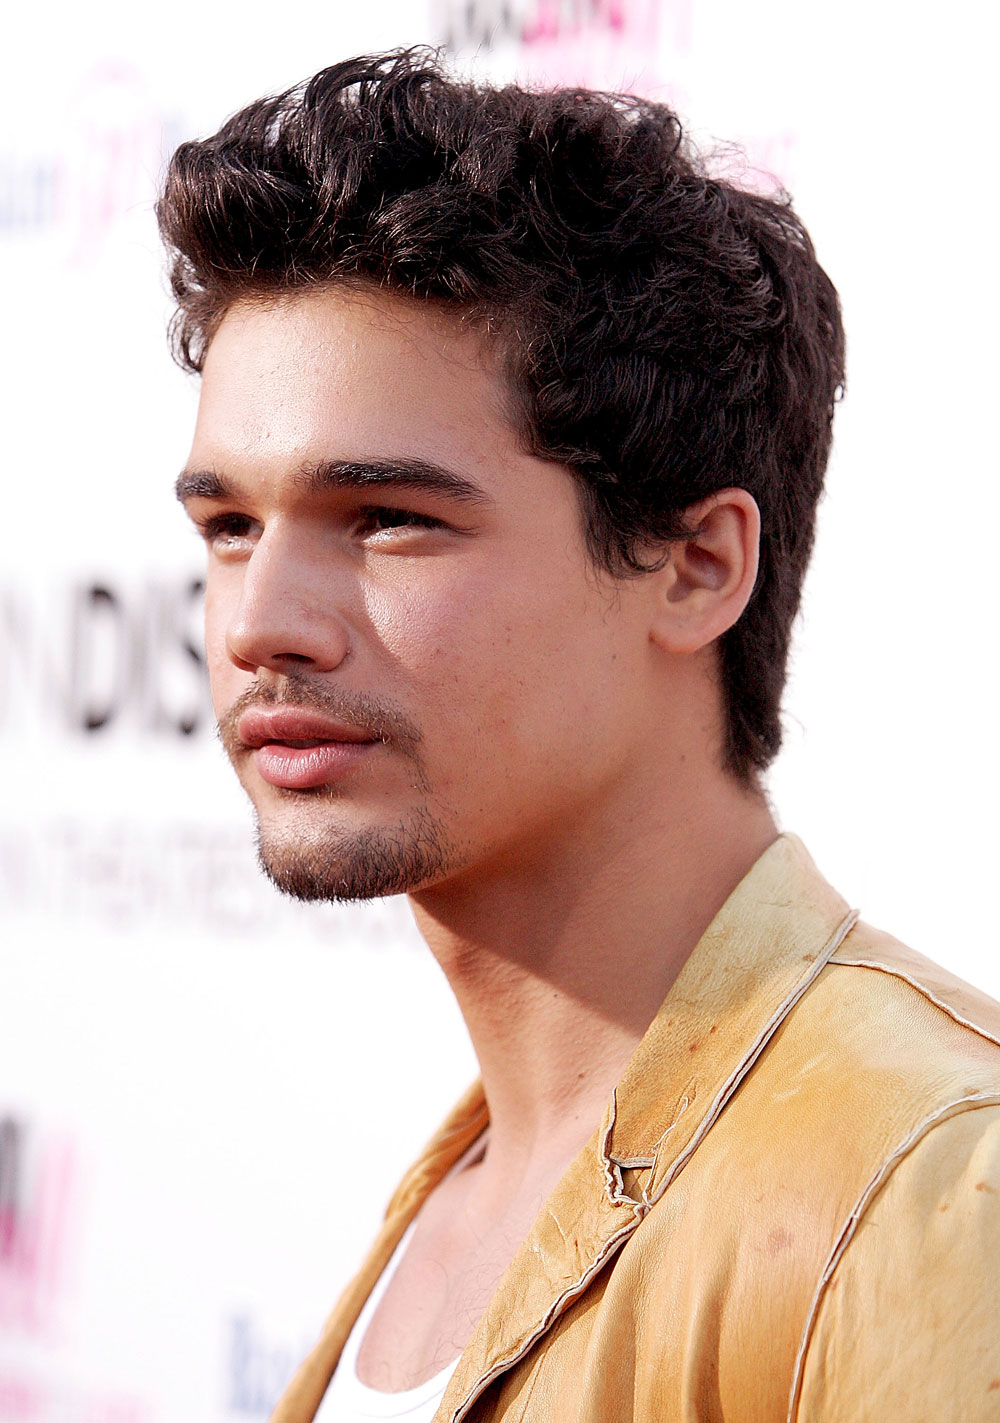 how tall is steven strait